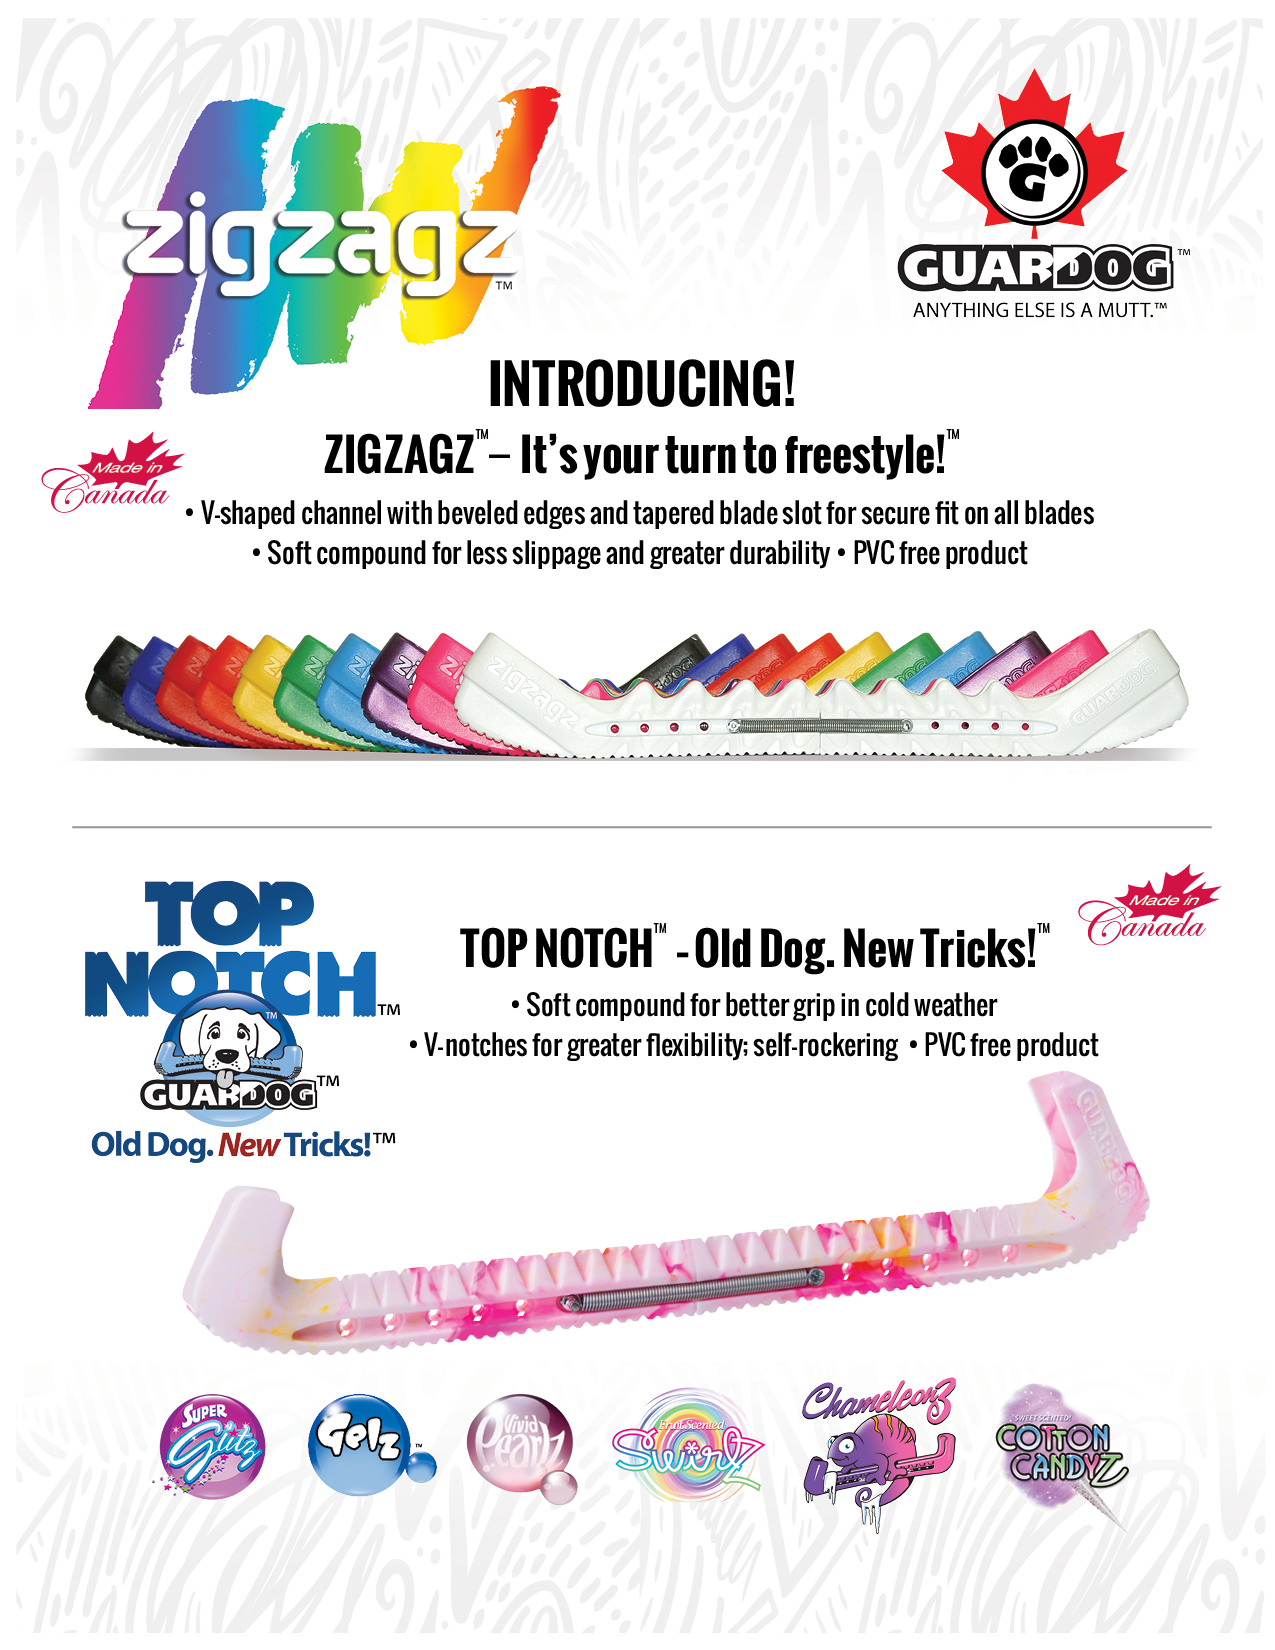 Guardog Zig Zag and Top Notch skate guards